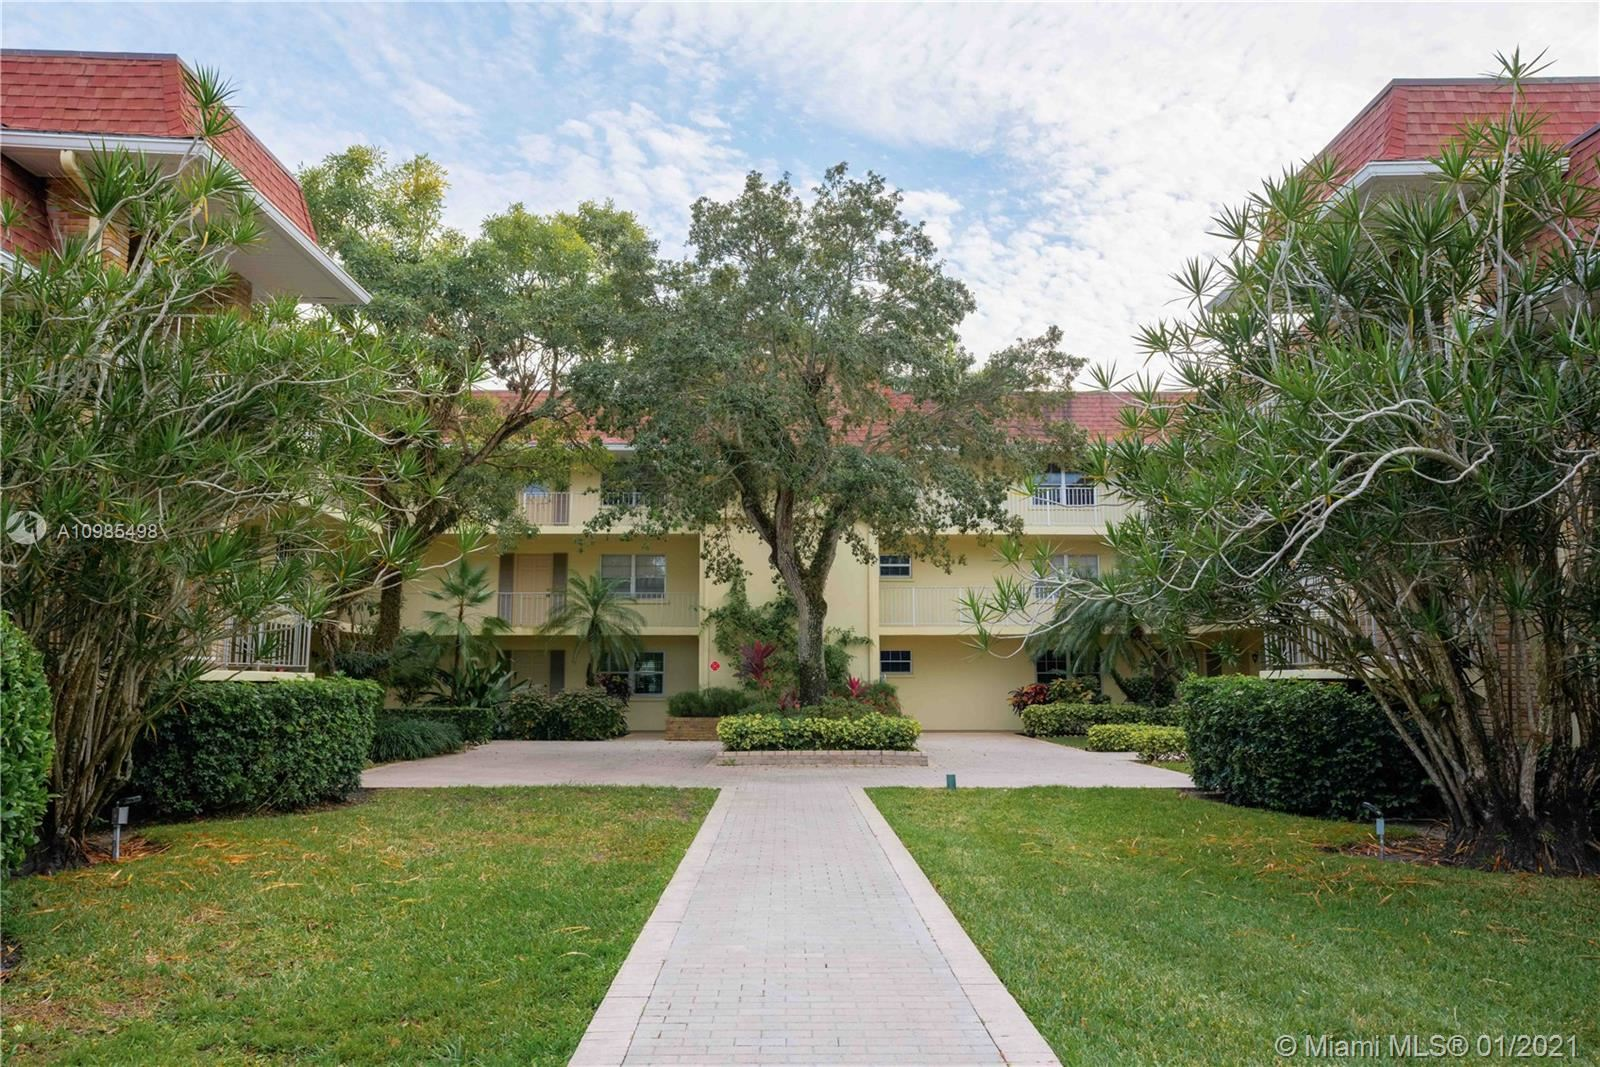 Photo of 5510 Tamberlane Cir #146, Palm Beach Gardens, FL 33418 (MLS # A10985498)